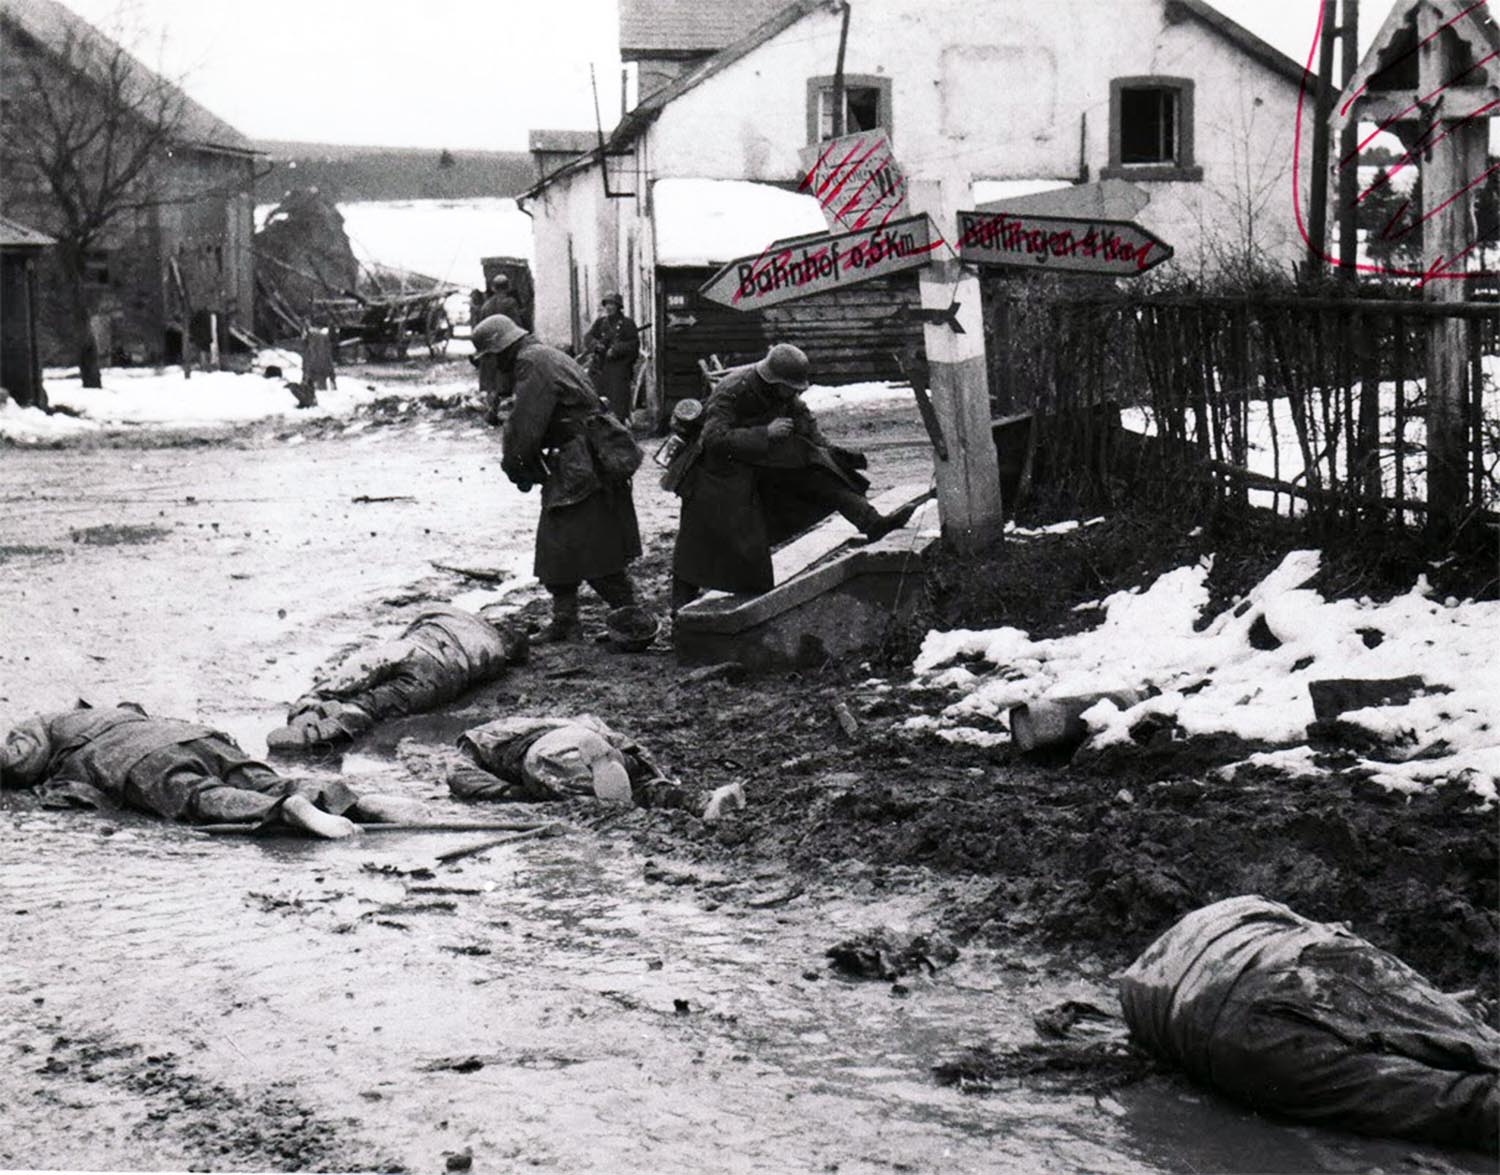 German soldiers strip boots and other equipment from dead American soldiers, 1944